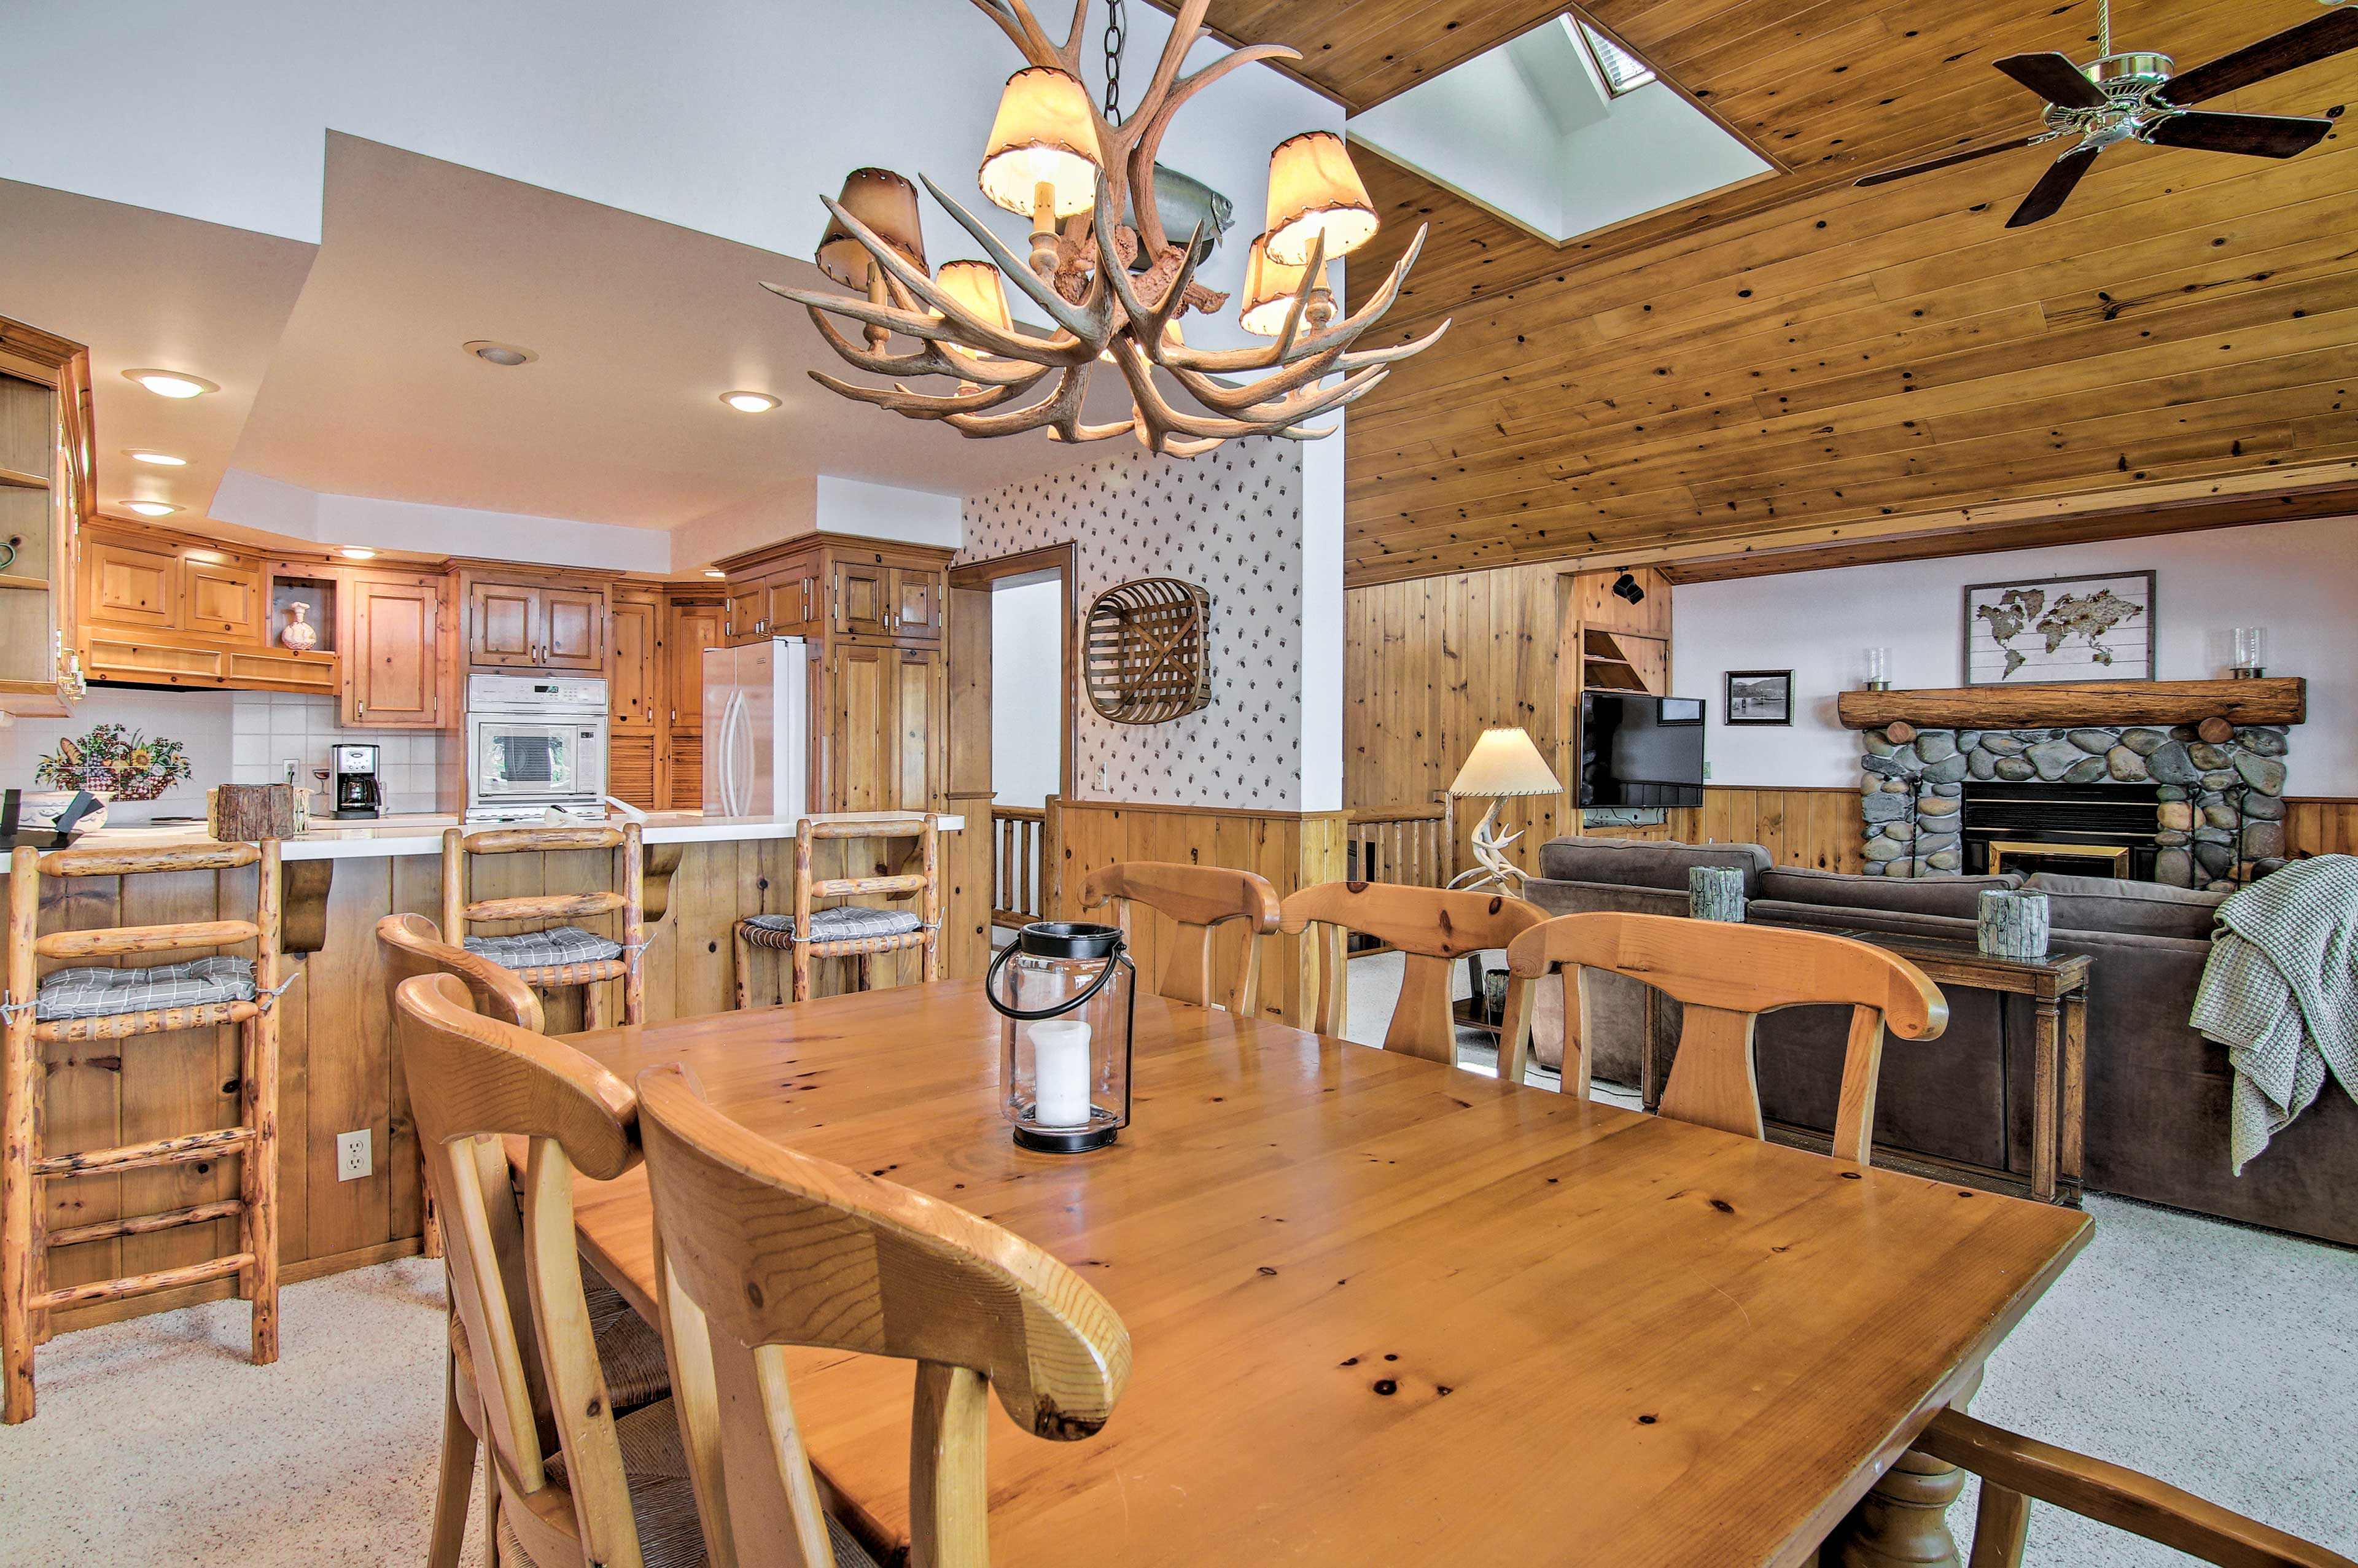 The home can easily accommodate your group of 10.